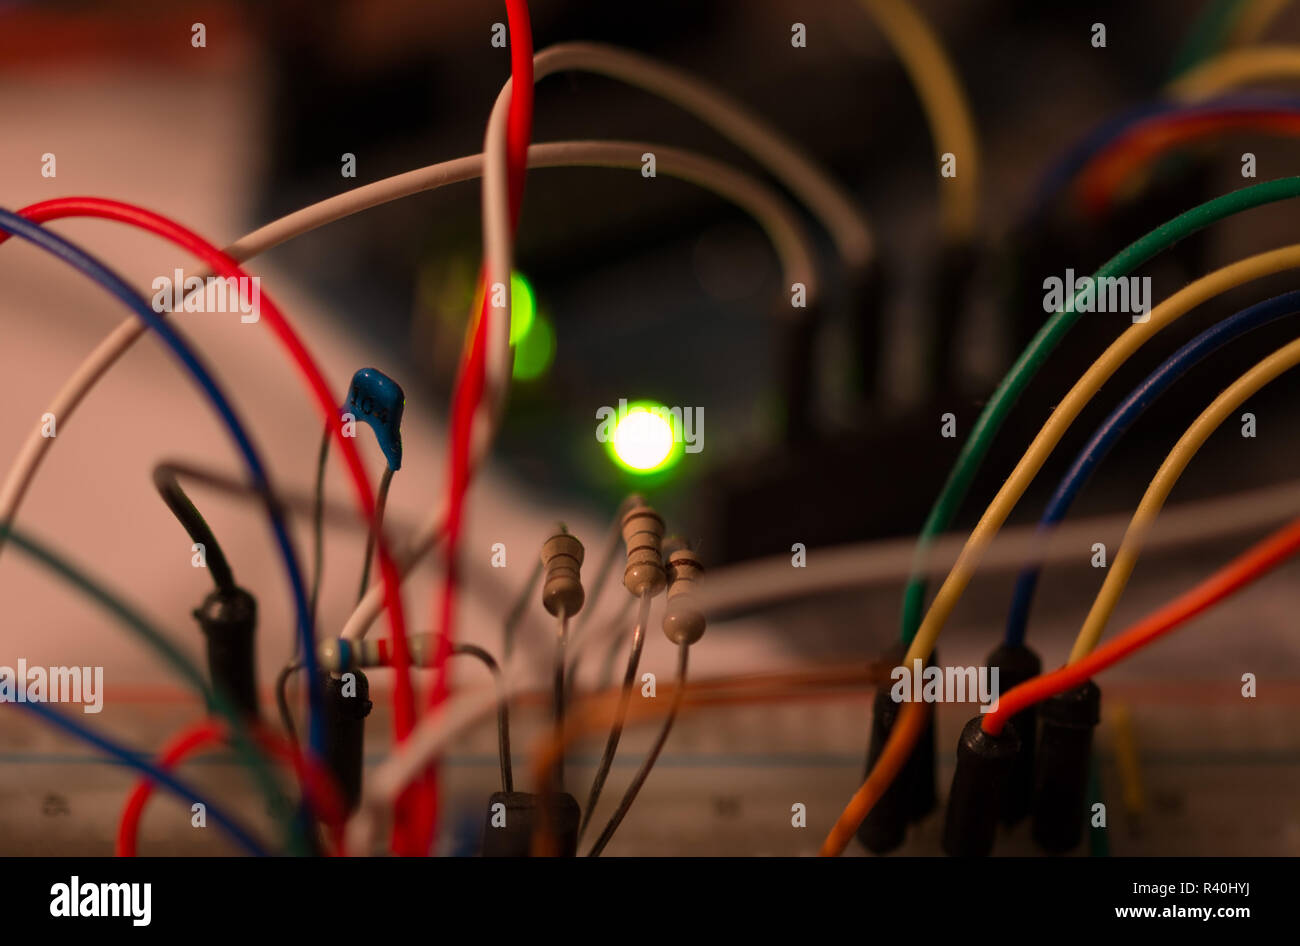 Breadboard Prototype Circuit Stock Photos Electronic Diagram Robotic An With Components Matching The